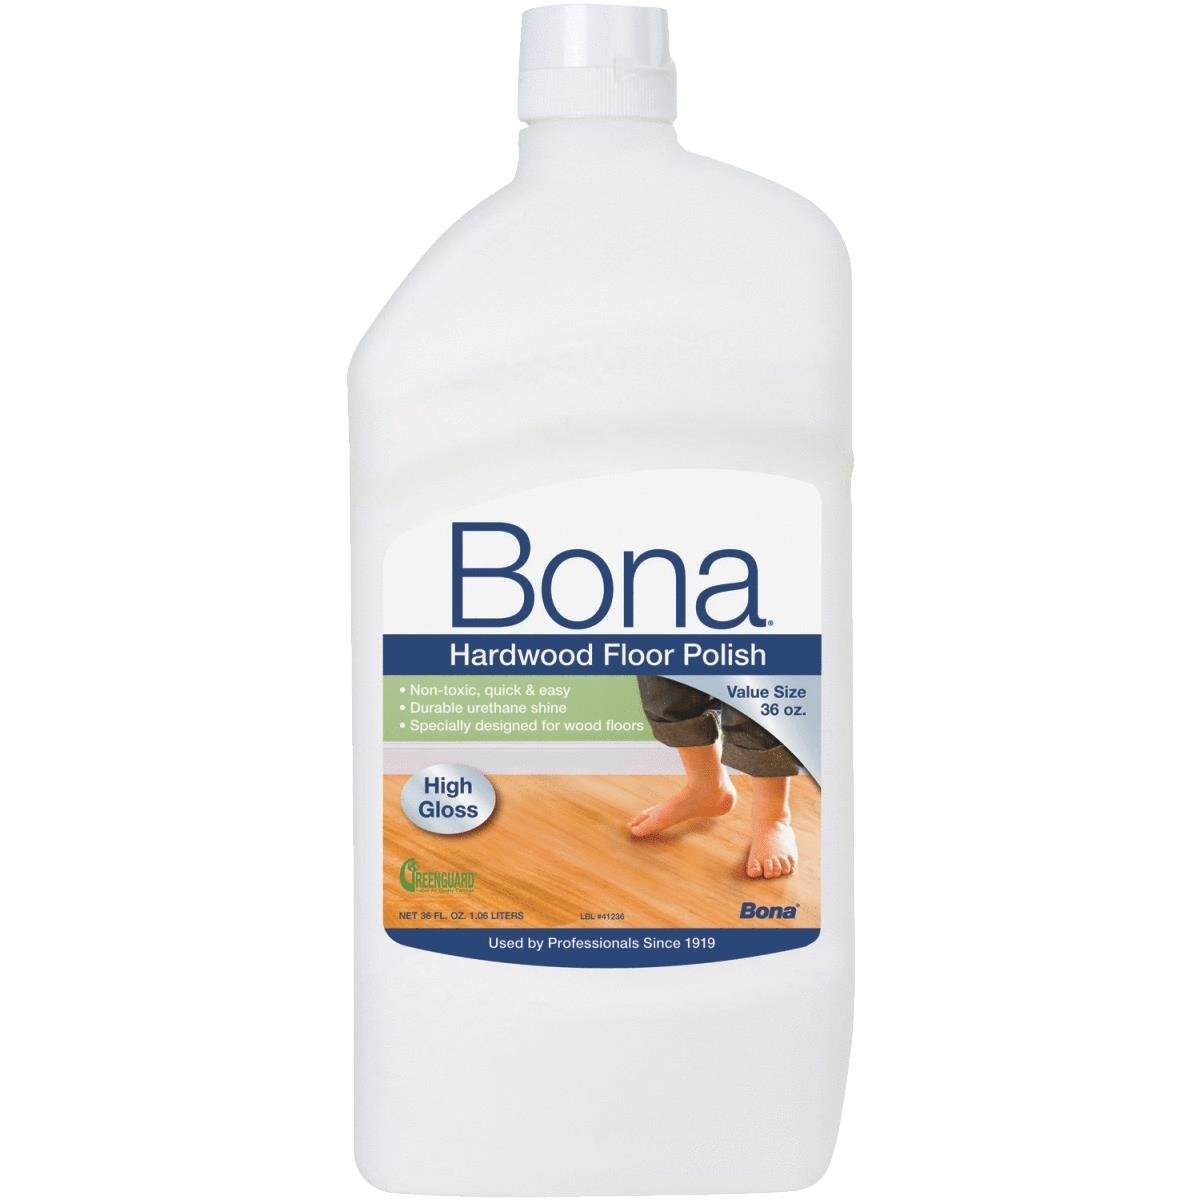 Bona Hardwood High Gloss Floor Polish